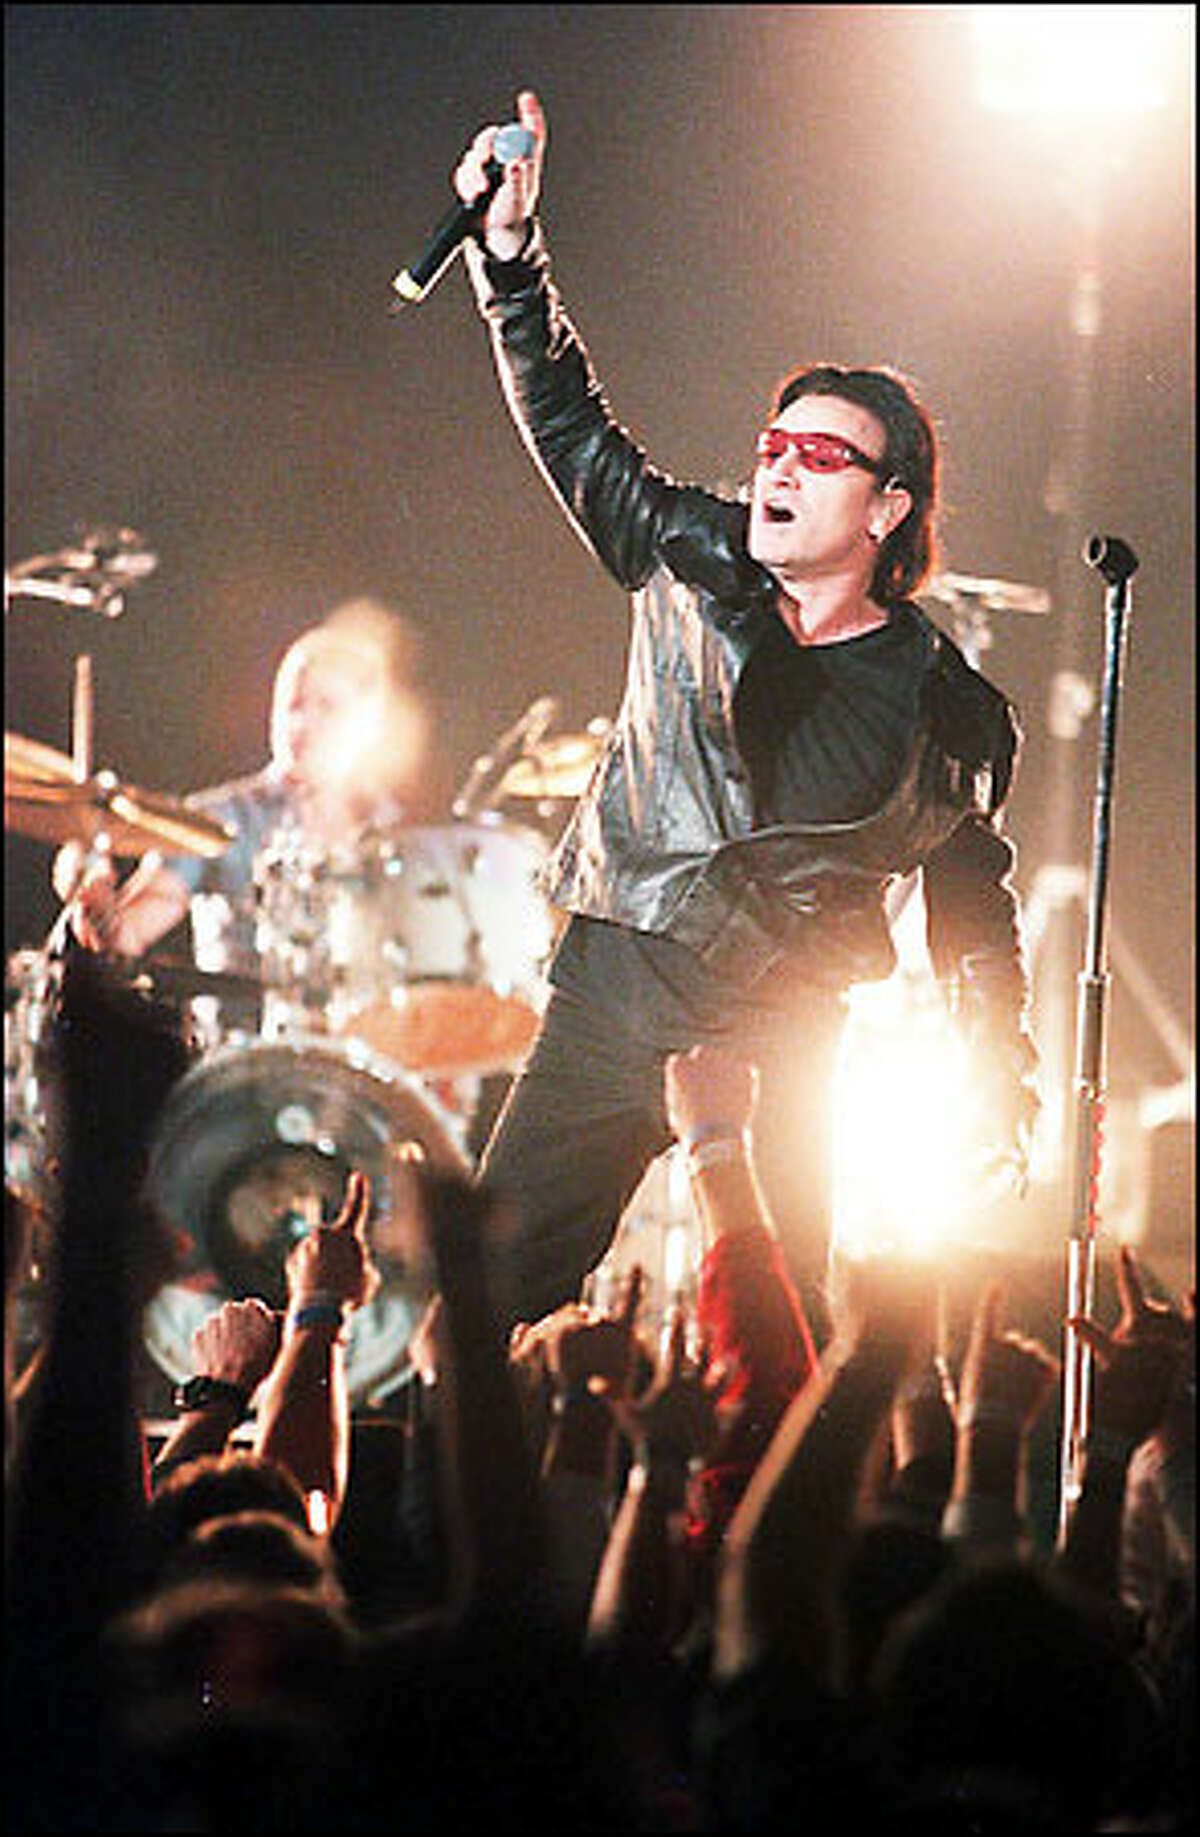 U2's lead singer Bono plays to the crowd at the Tacoma Dome stop of the Irish super band's